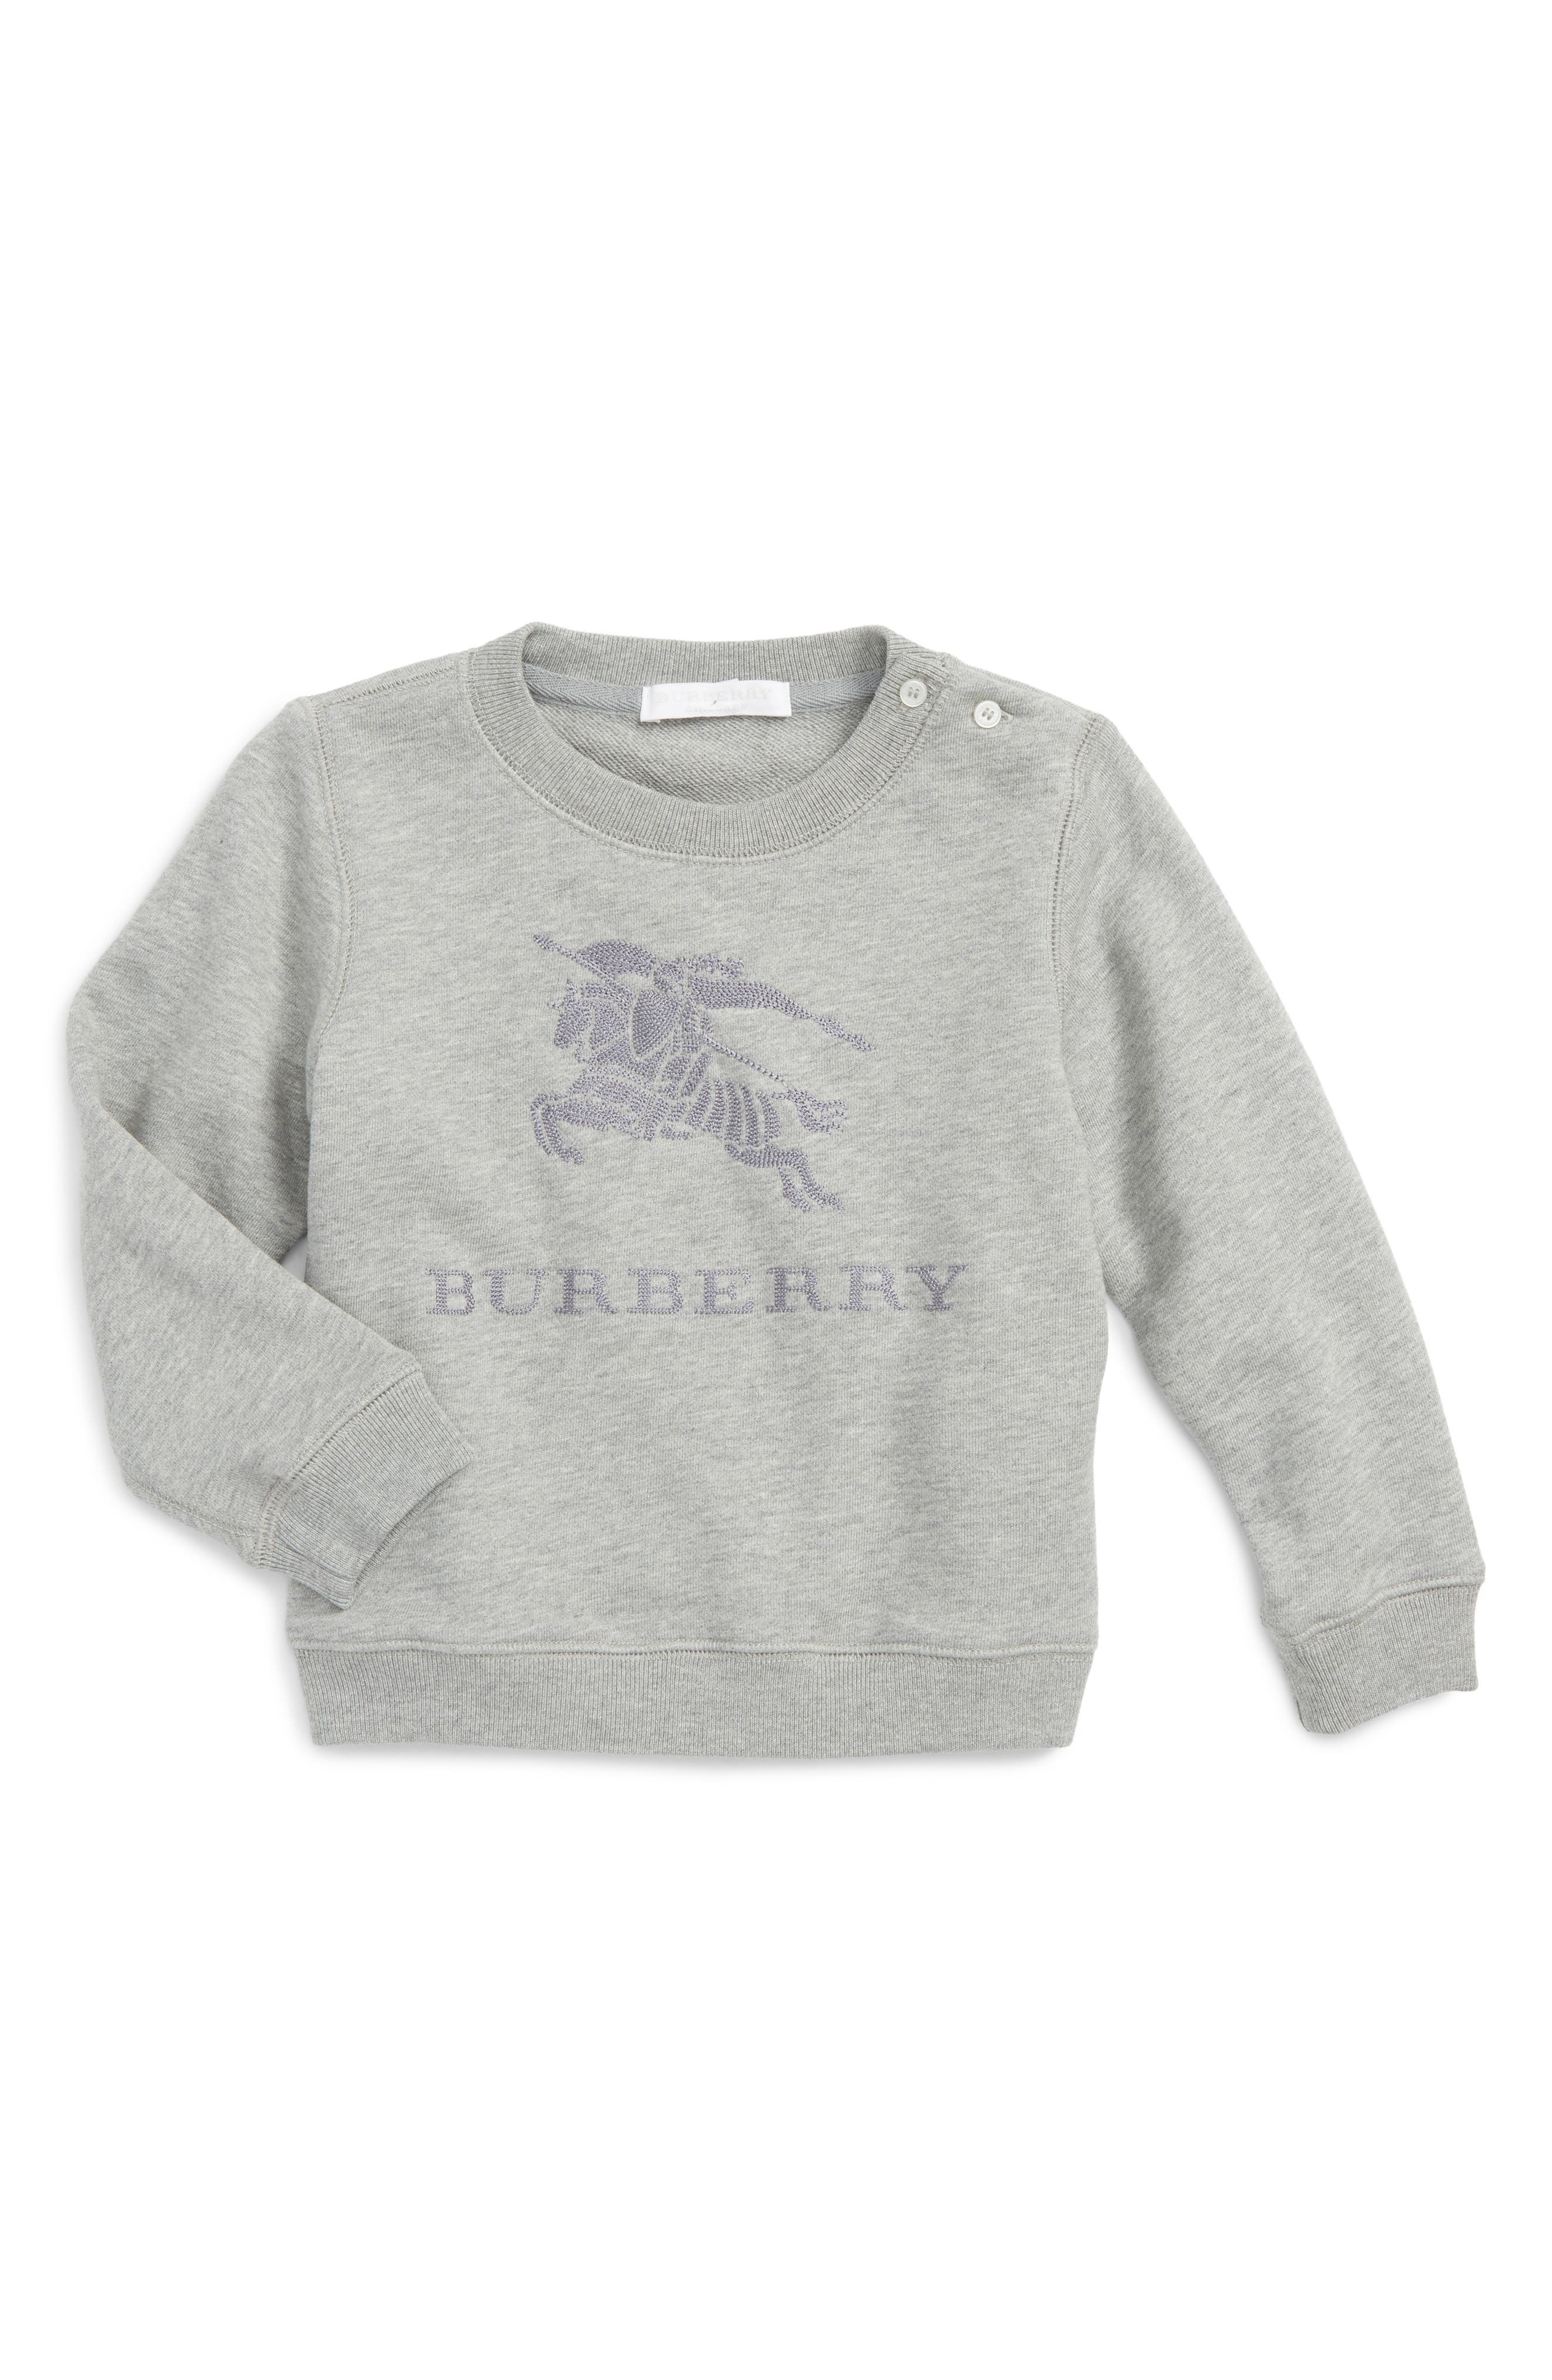 Burberry Tom Embroidered Pullover (Toddler Boys)